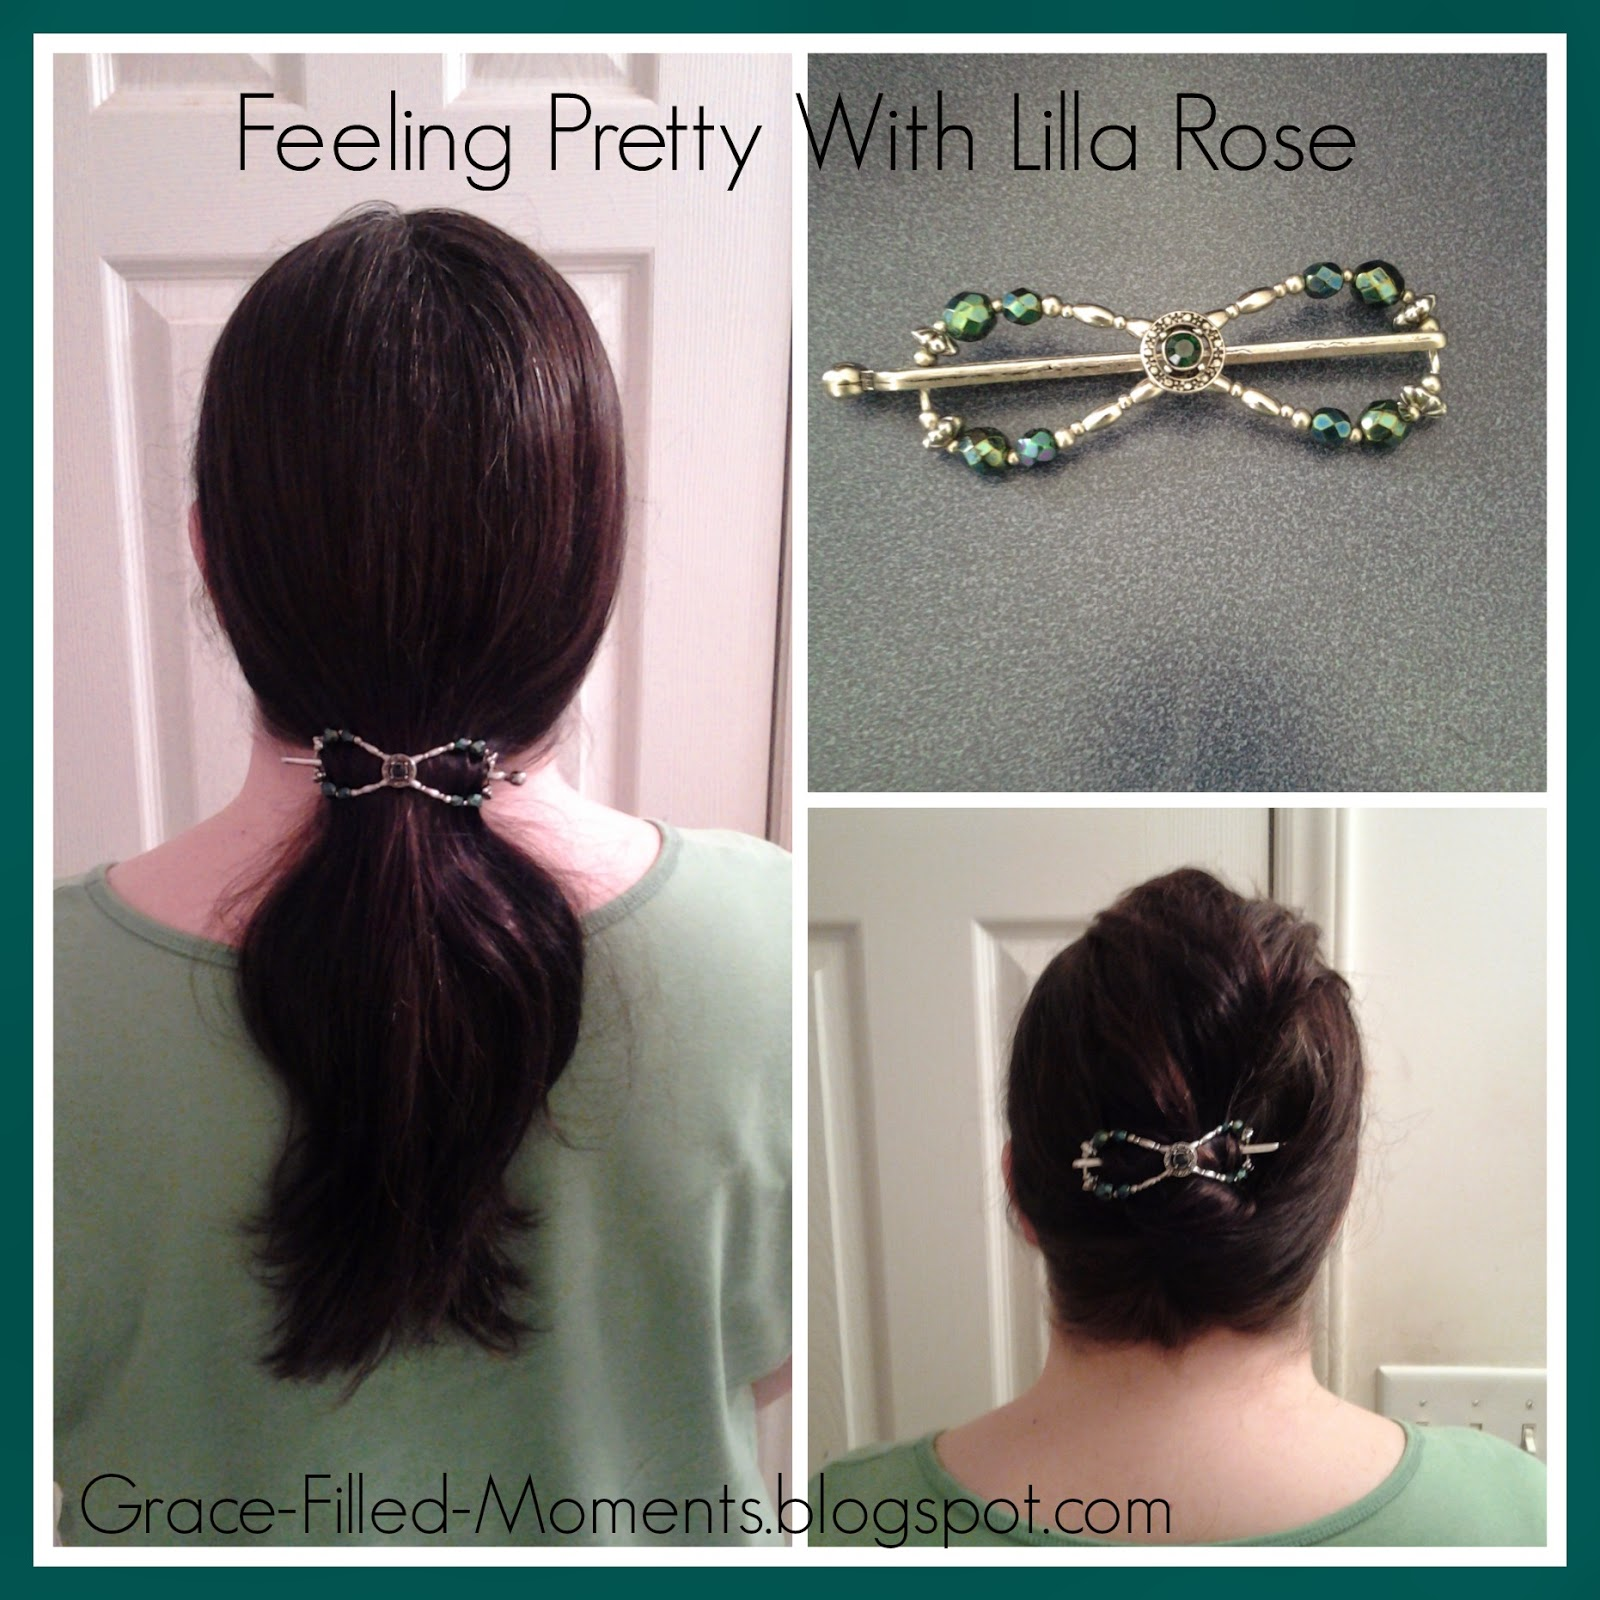 Flexi Clips from Lilla Rose